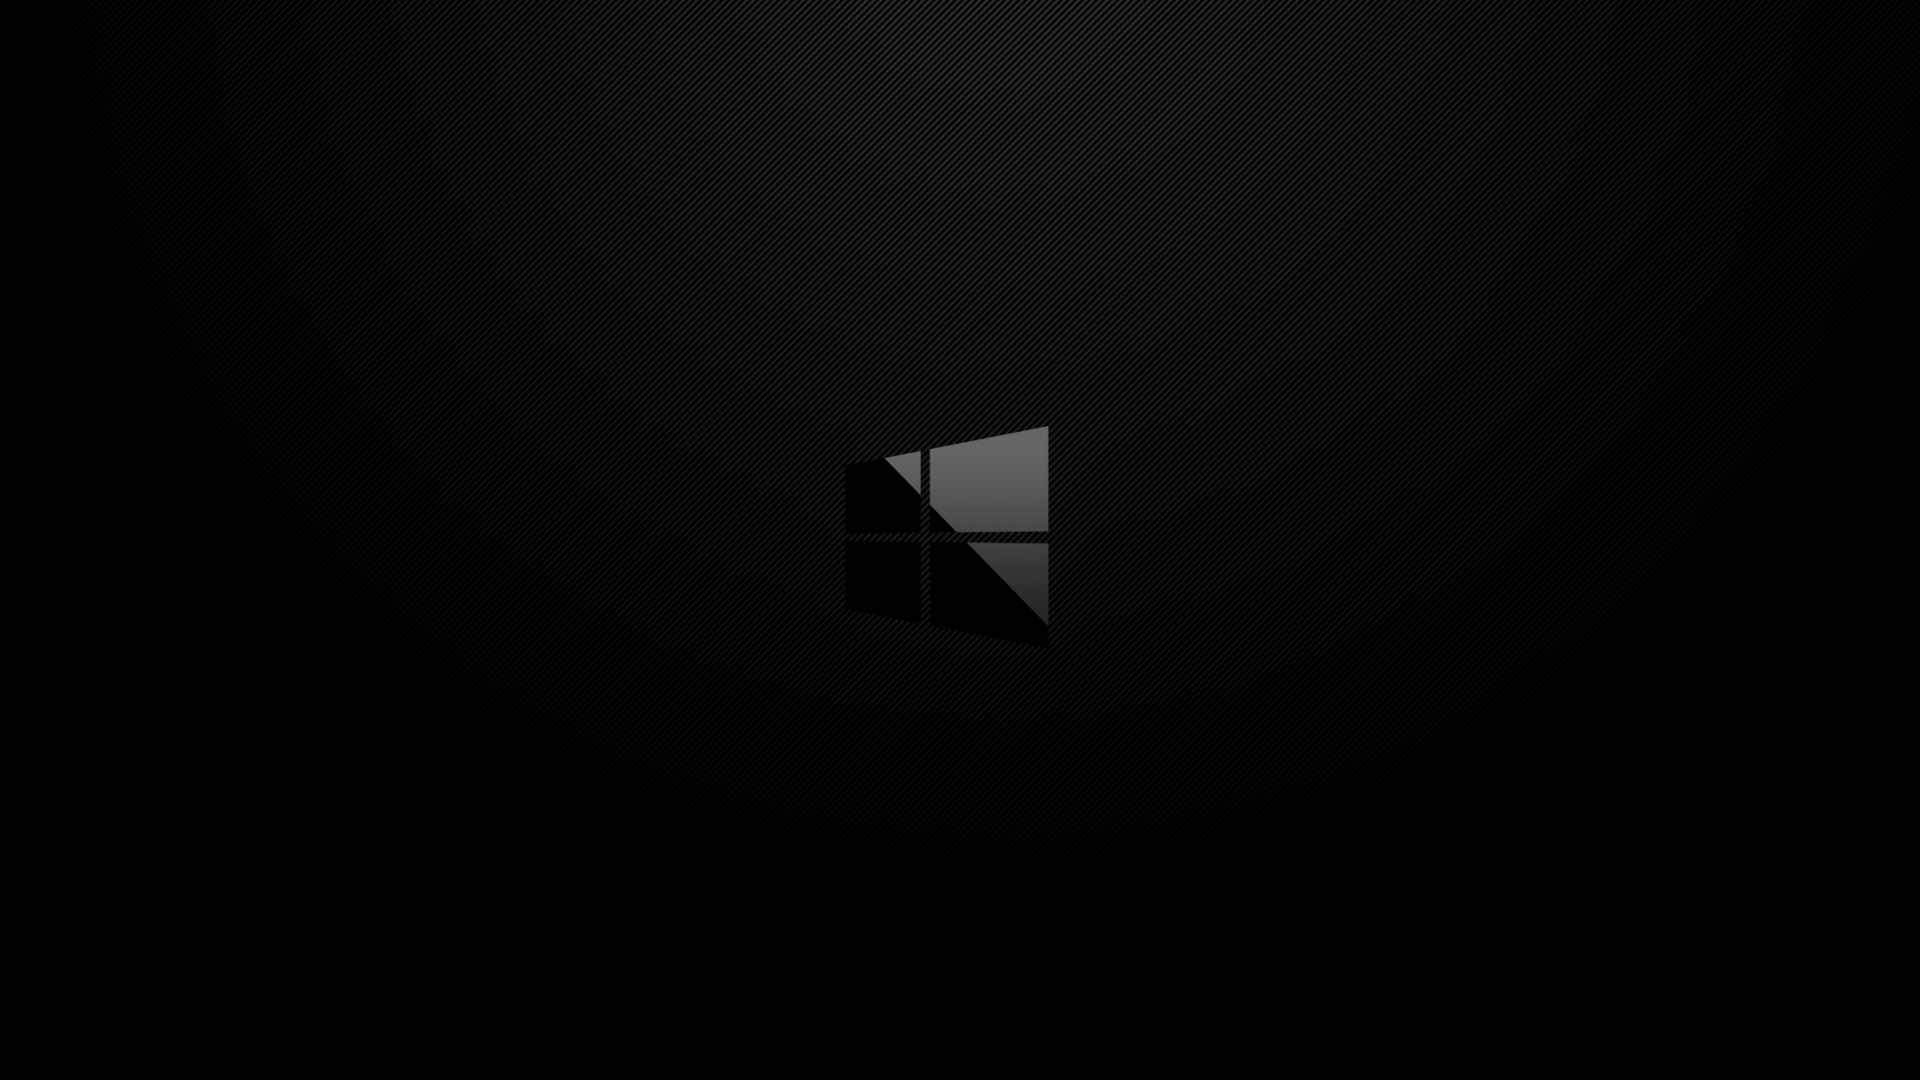 Free download Made a dark minimalist wallpaper for my ...